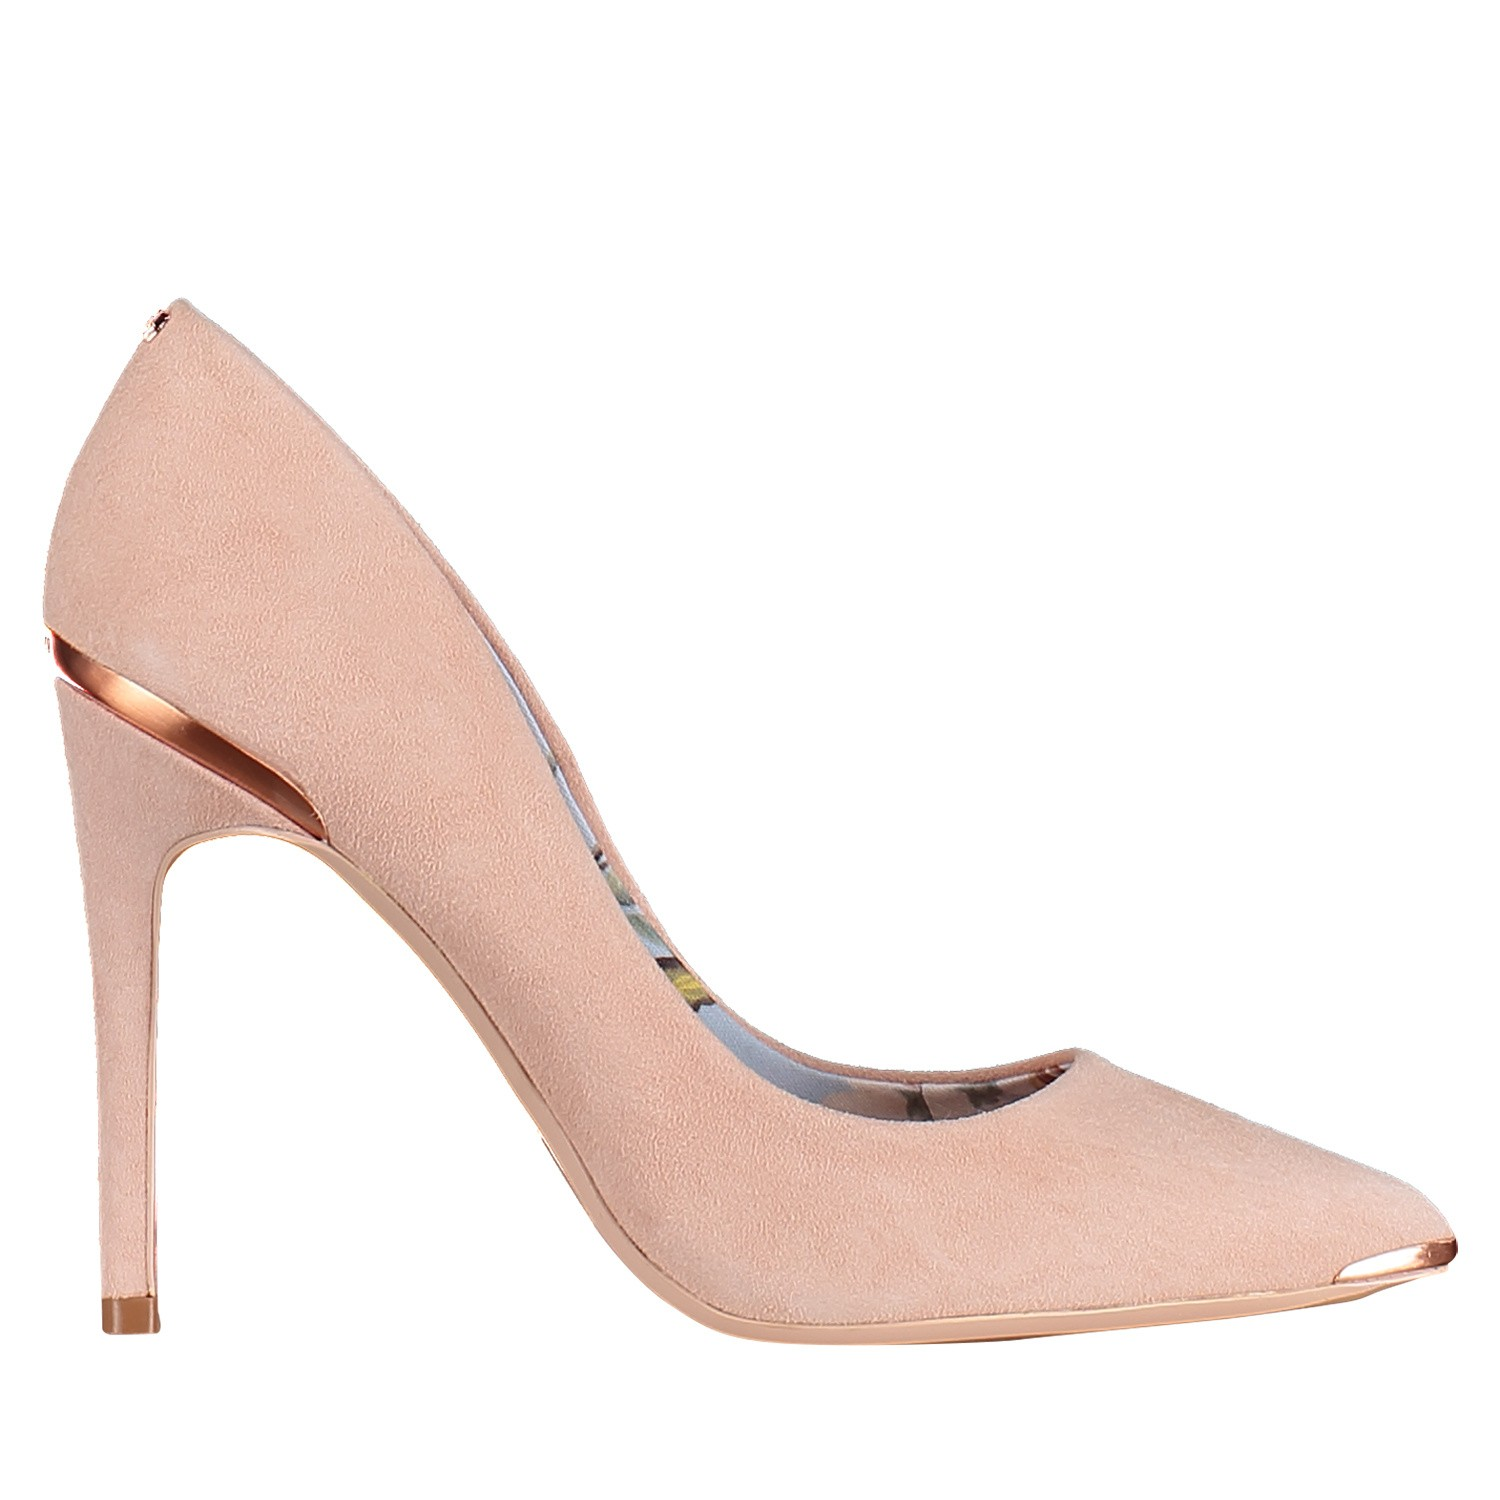 Picture of Ted Baker 918161 pumps light beige